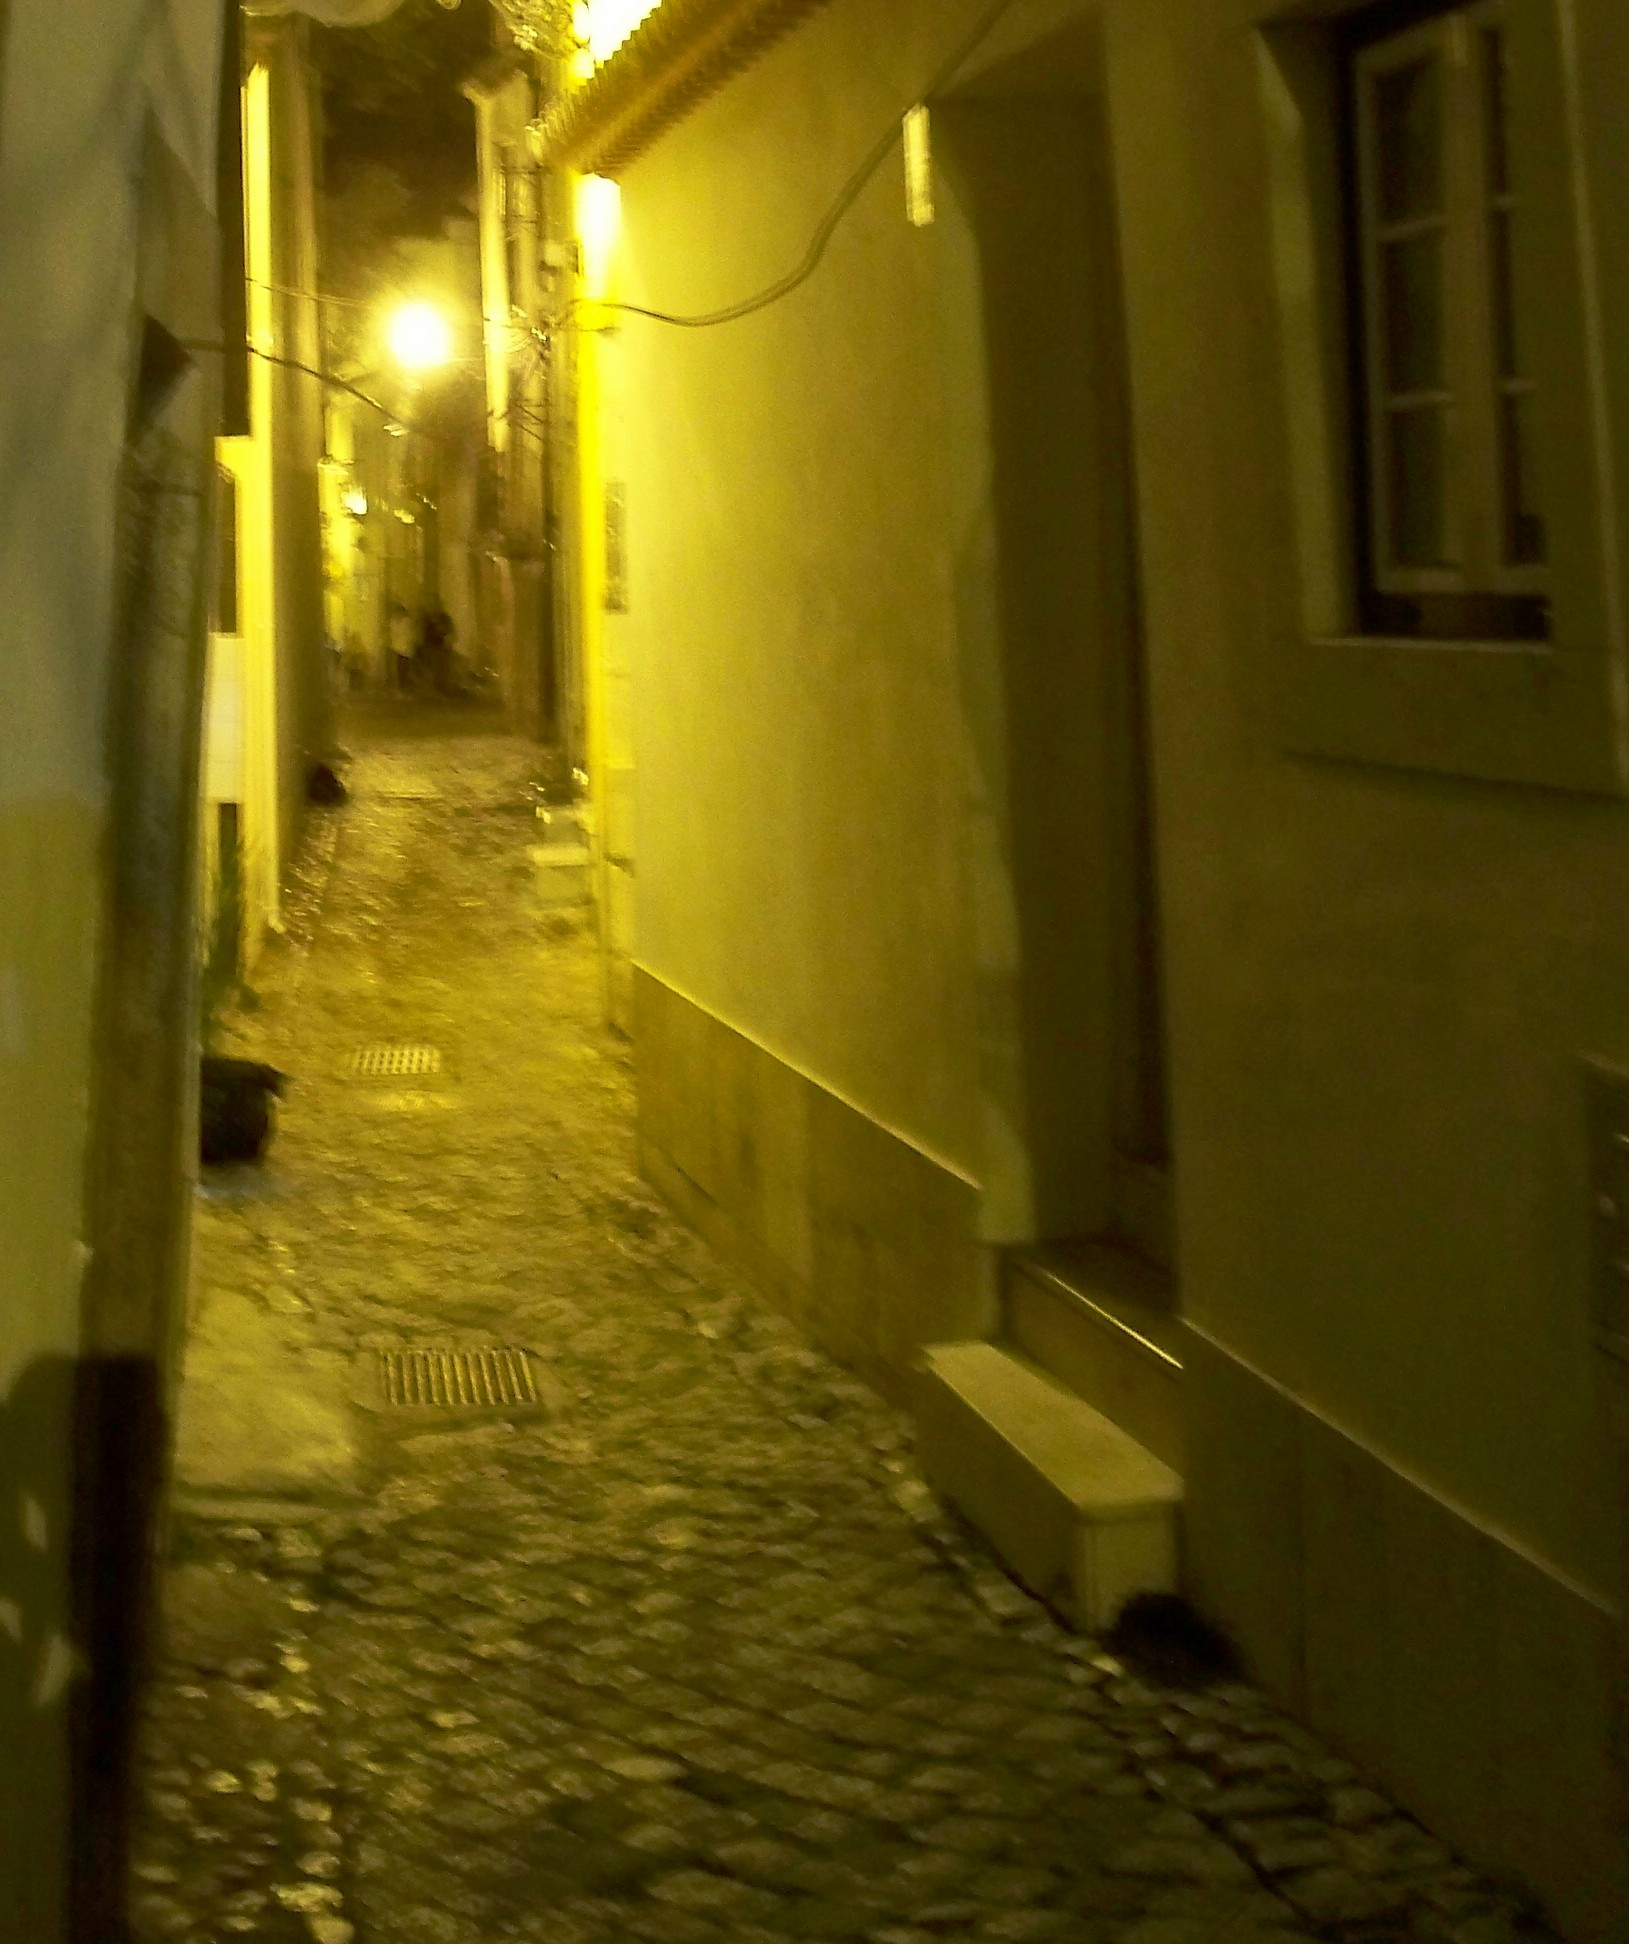 Saturday night in the Alfama . . . who knows which way magic lies?